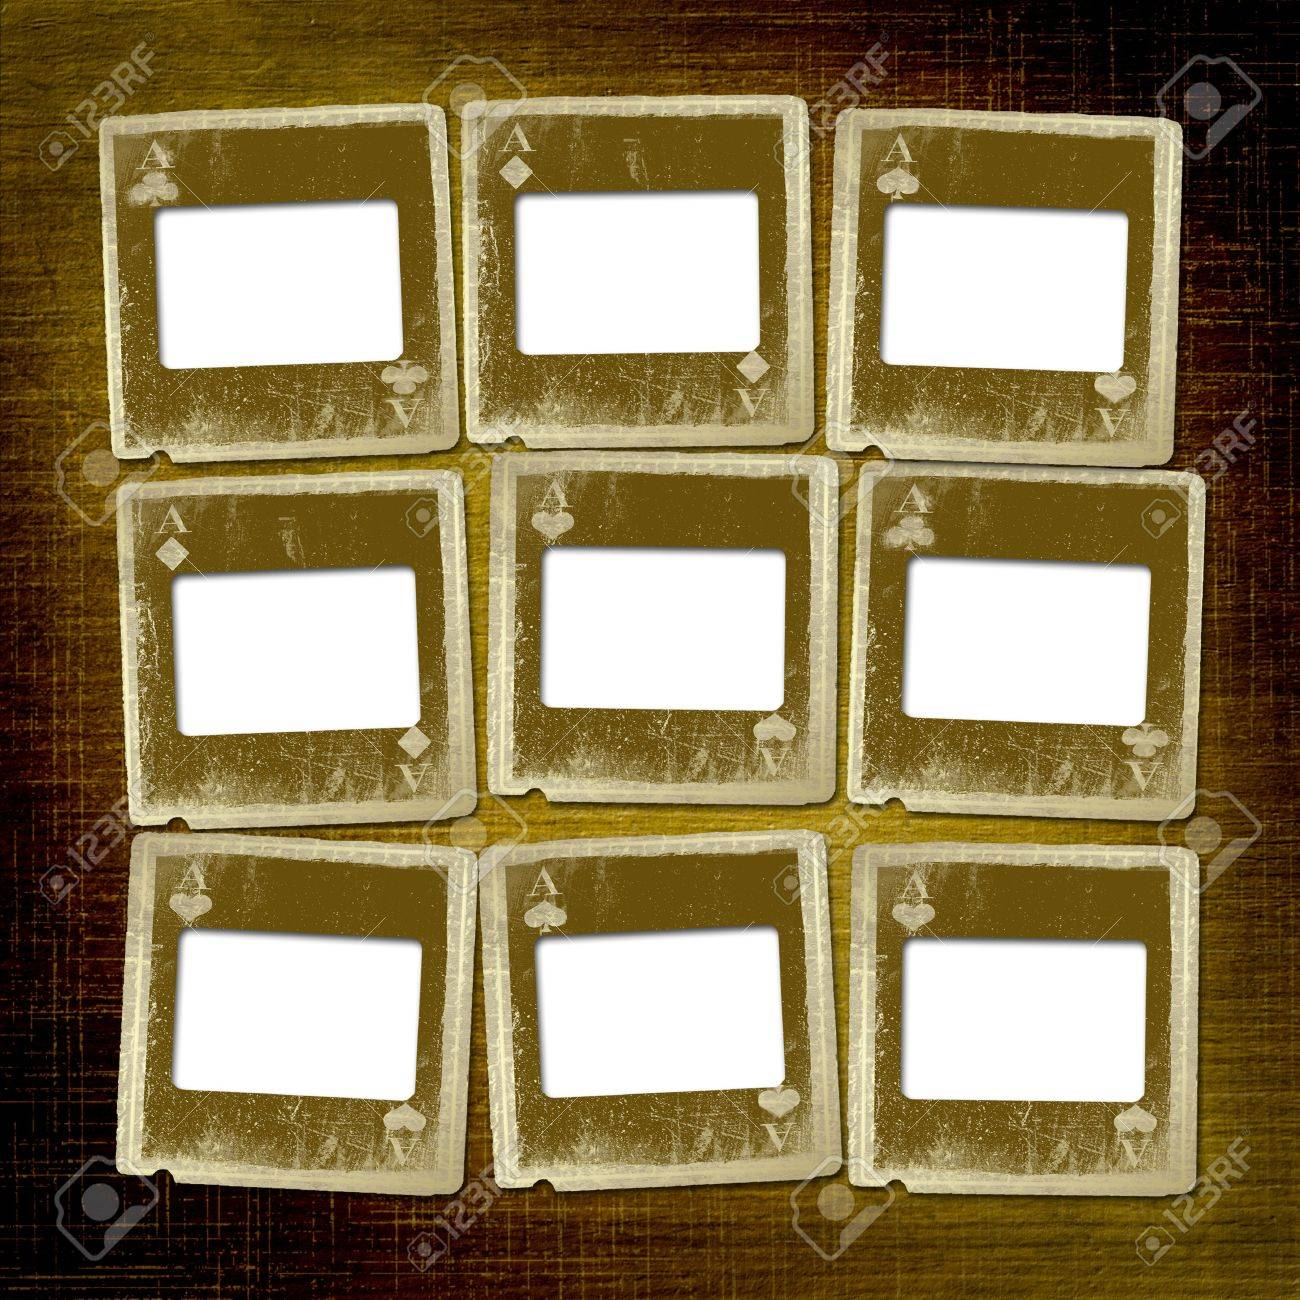 Old alienated slides on the abstract background Stock Photo - 7154062